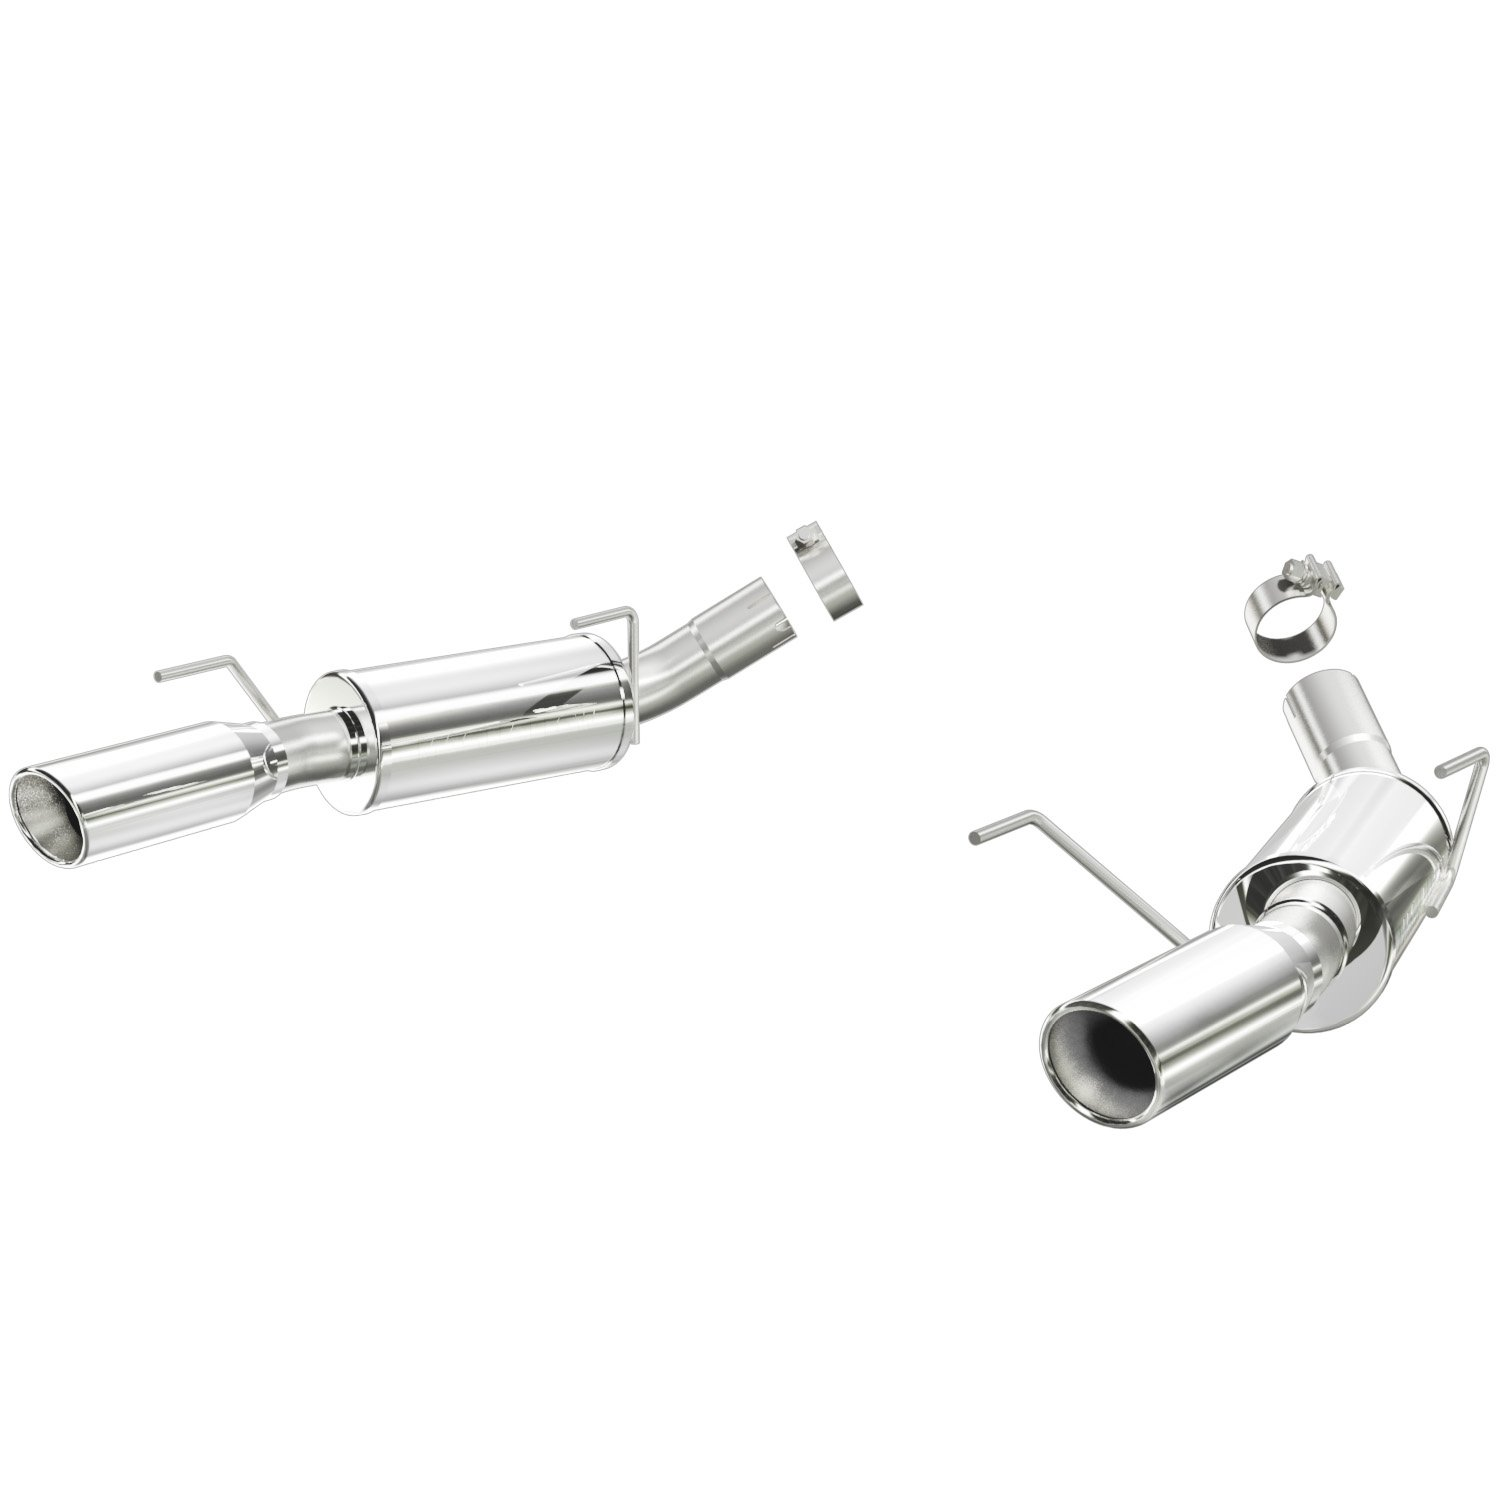 MagnaFlow Competition Diesel Exhaust System